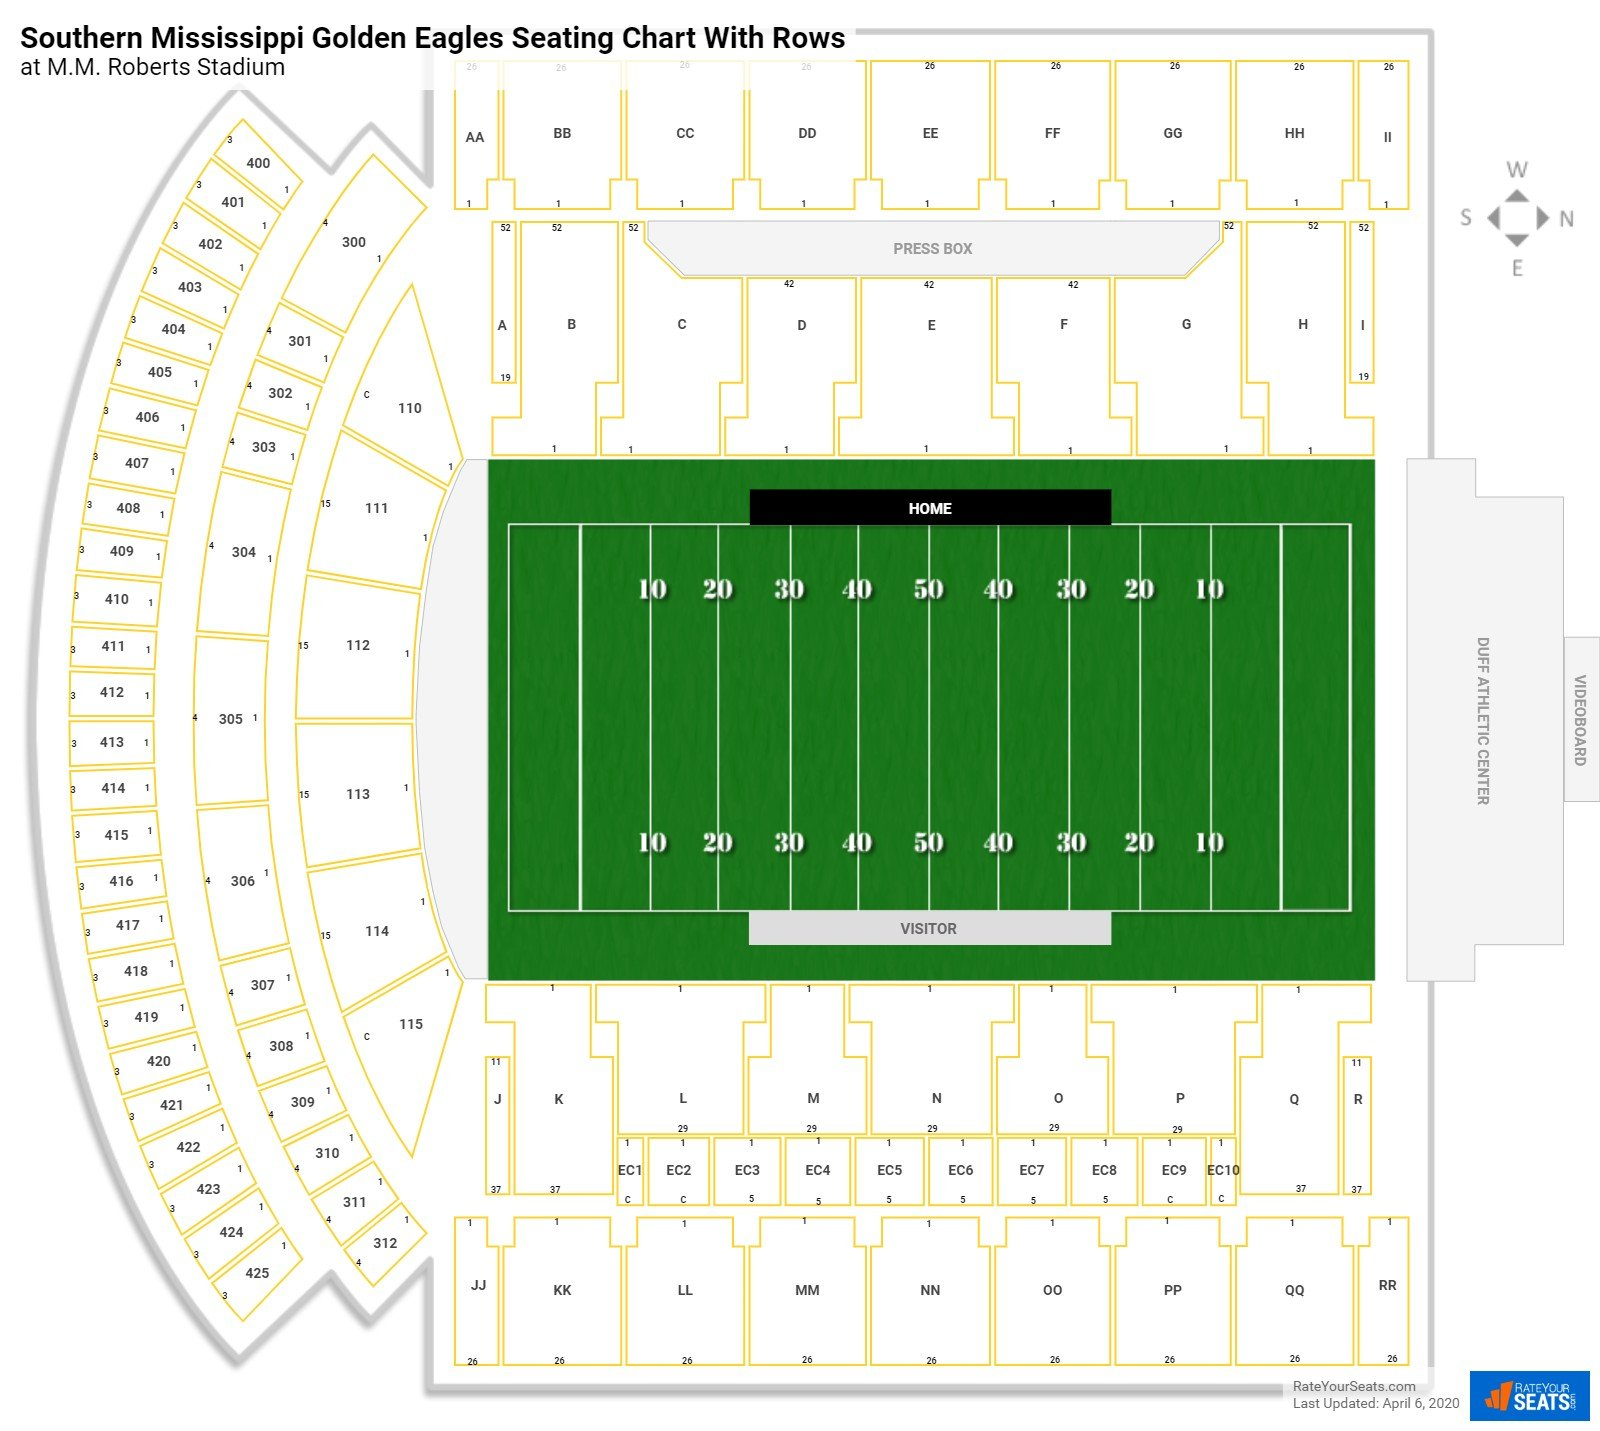 M.M. Roberts Stadium seating chart with rows